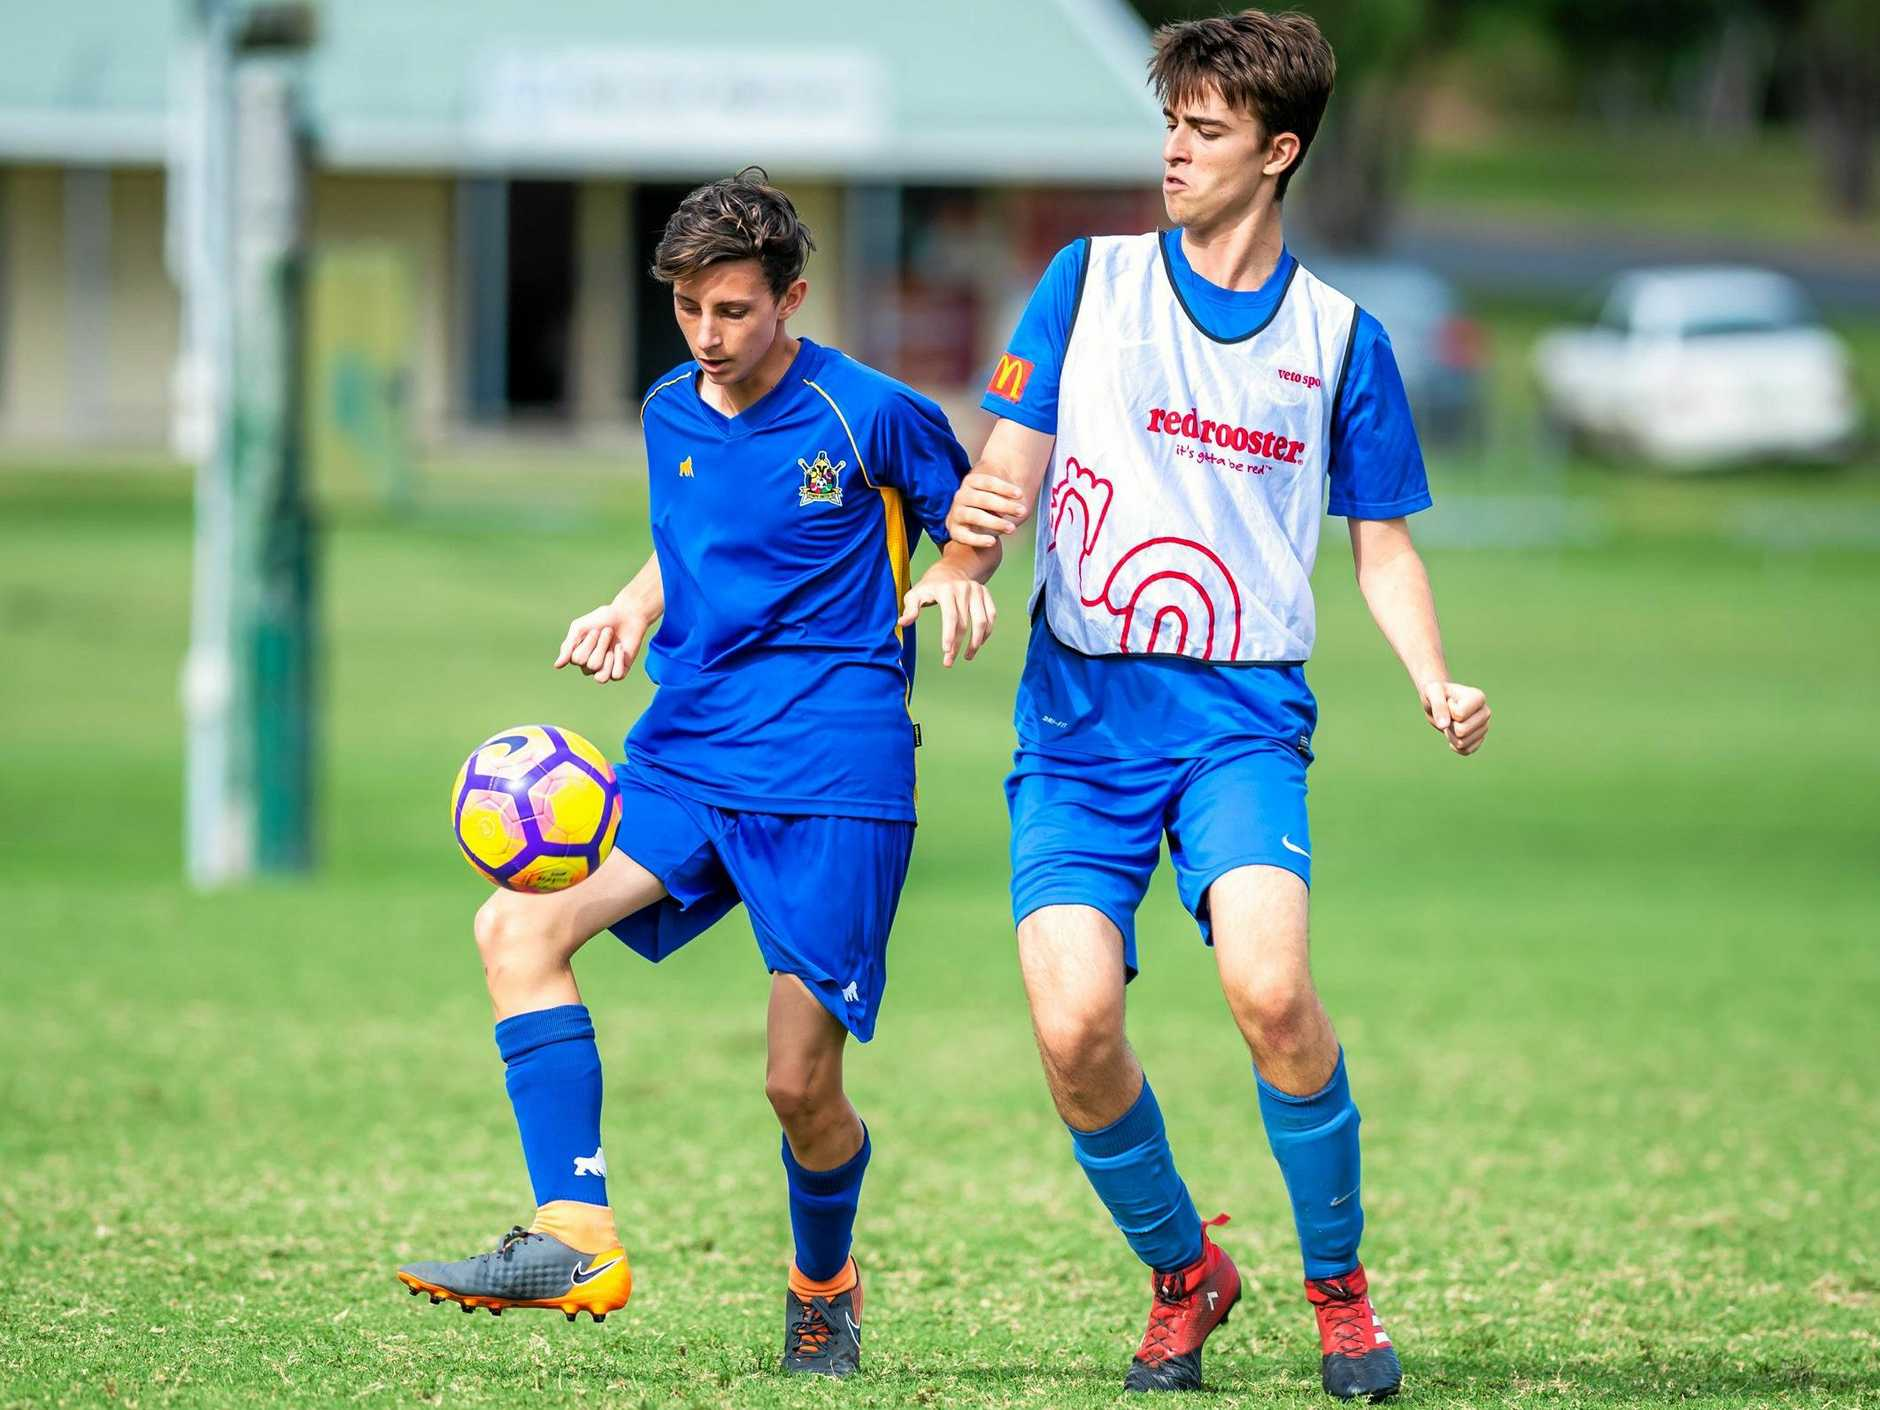 LEADING THE ATTACK: Jacob Robson scored the first of Gympie United's two goals to help extend their undefeated run on Saturday.